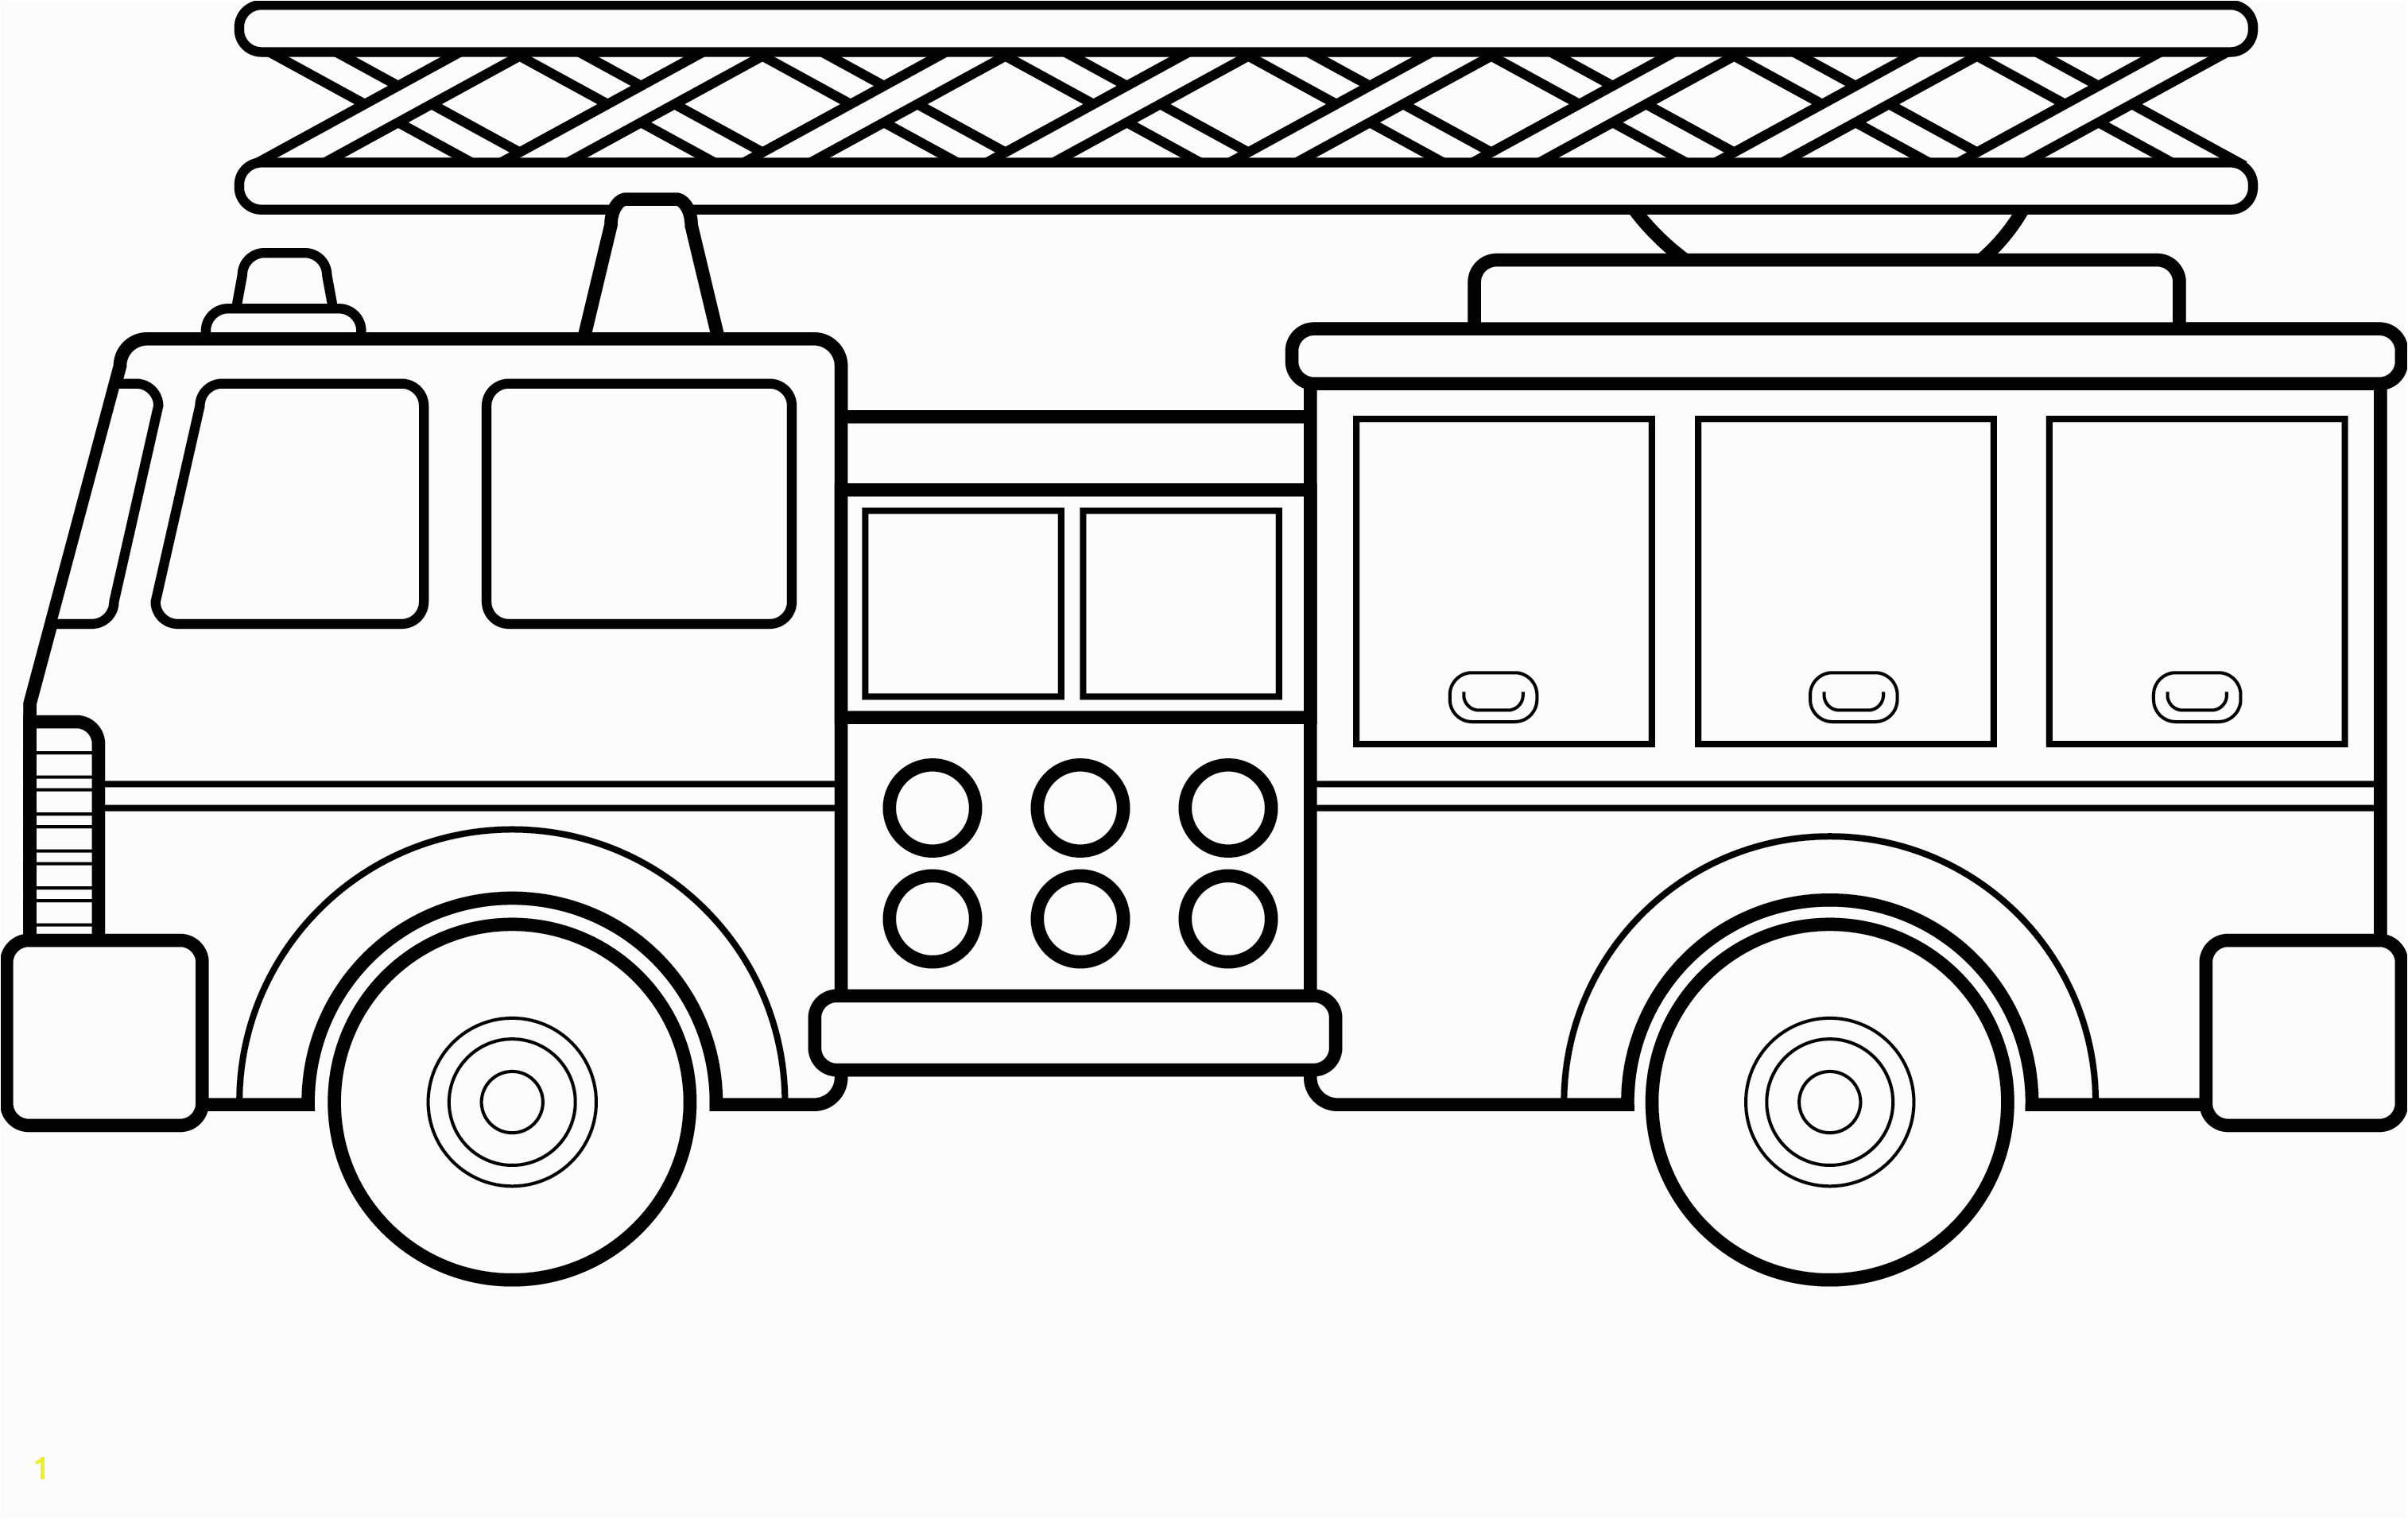 Fire Truck Coloring Pages Free Fire Truck Coloring Pages Printable Elegant Big Fire Truck Coloring